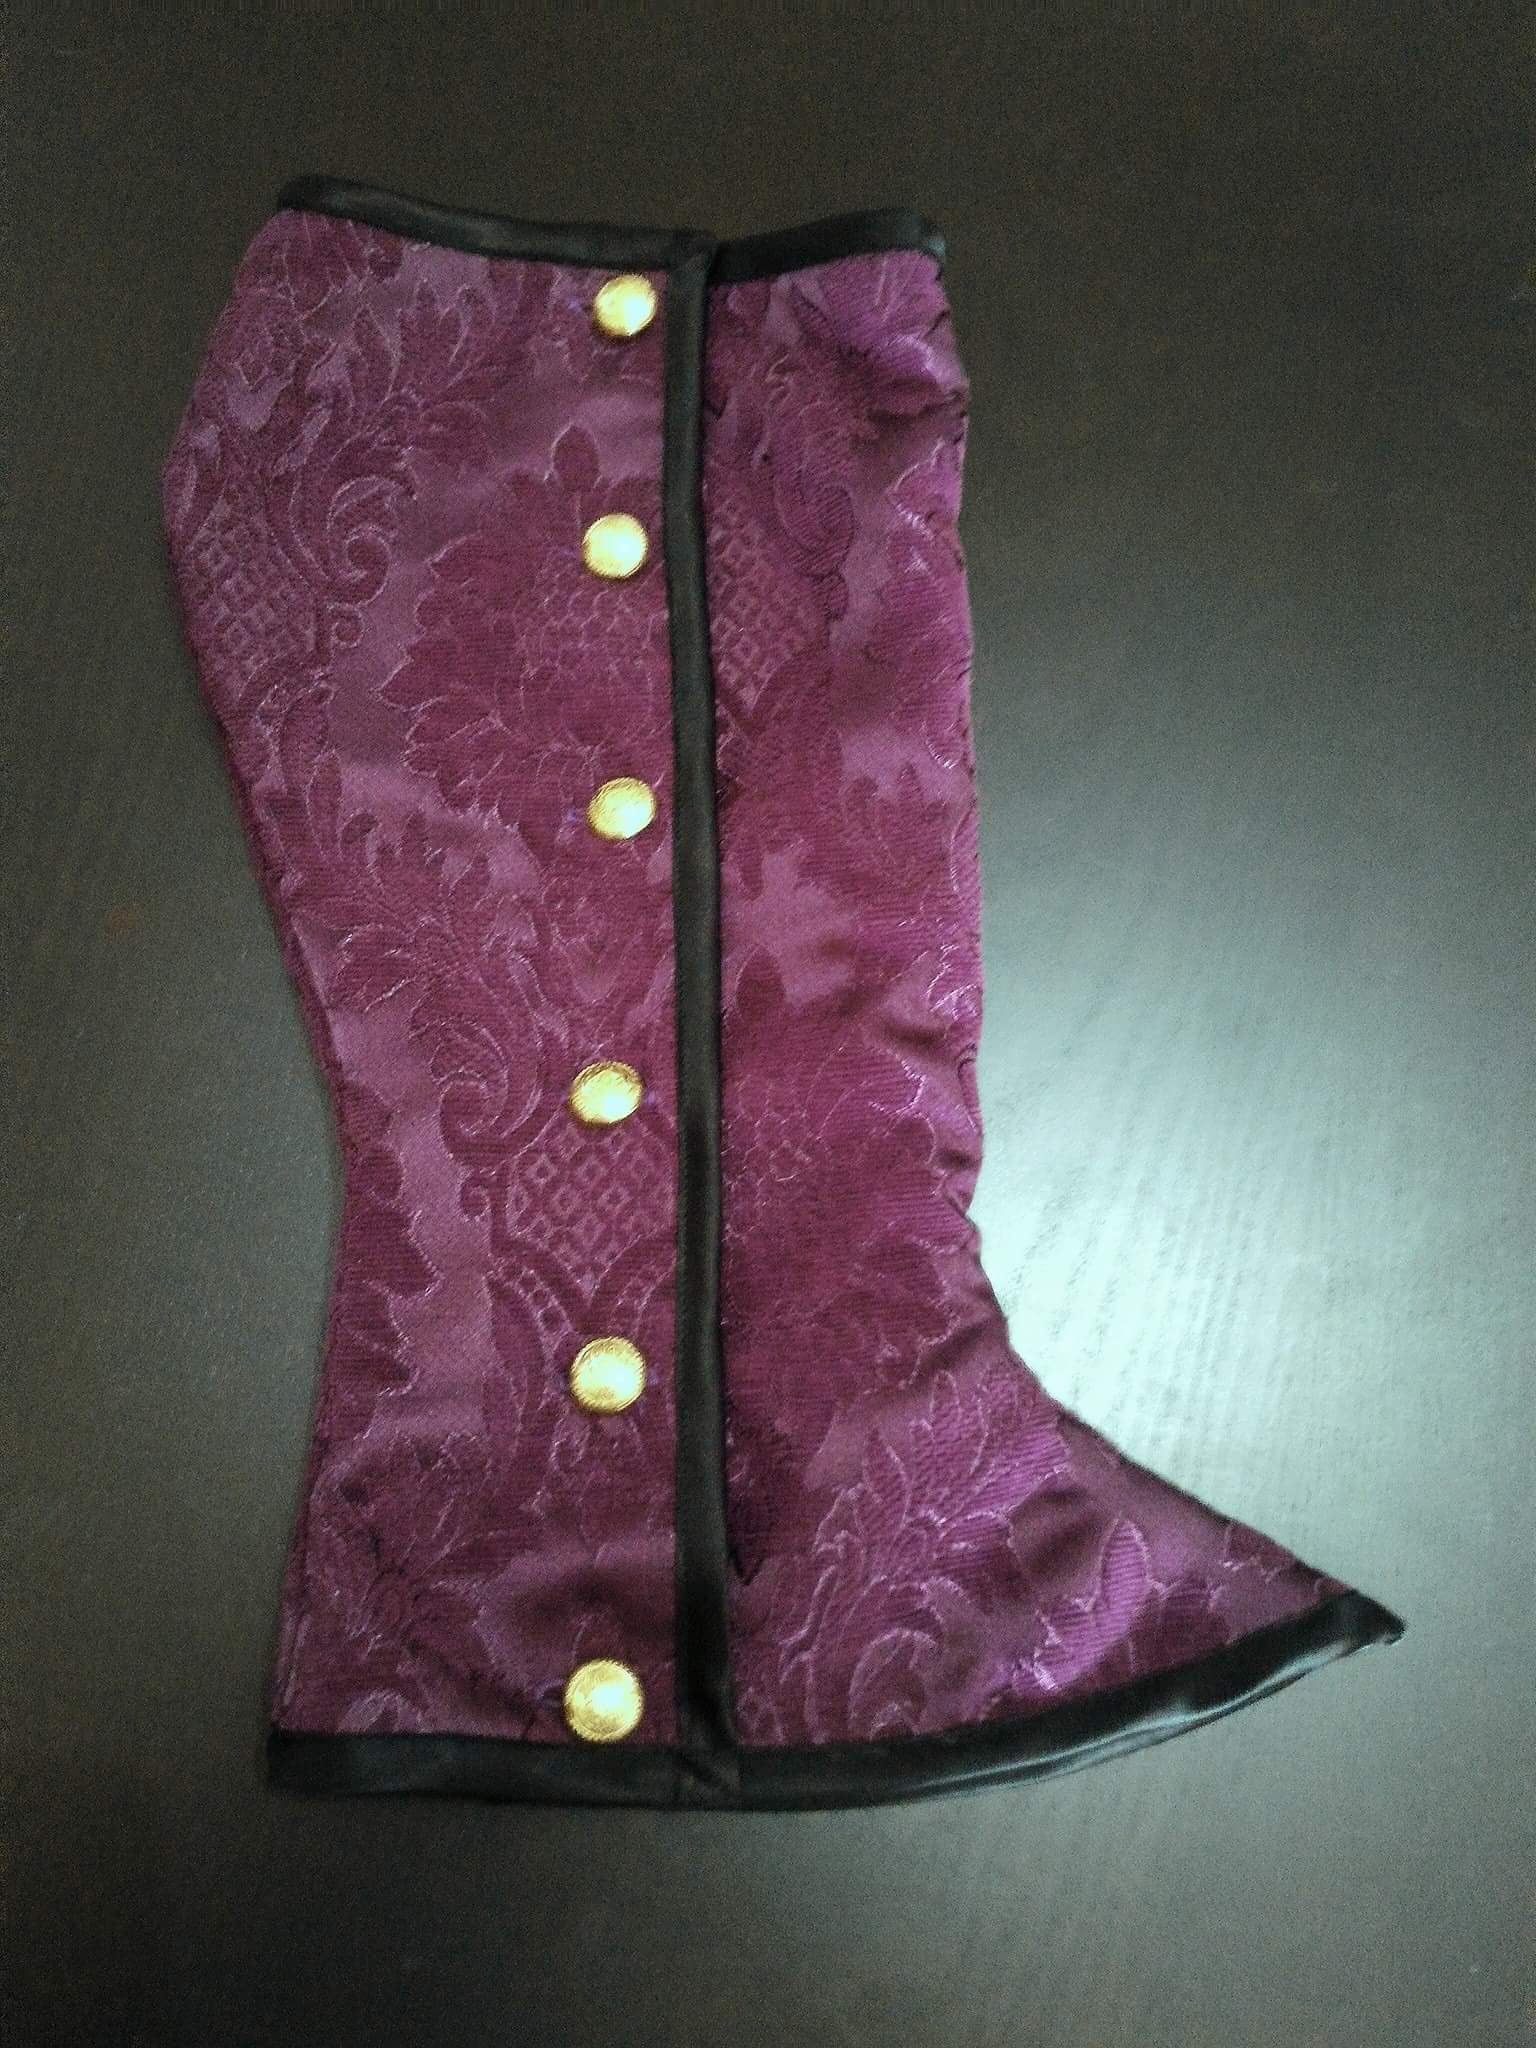 CTR-136 Purple Damask Velvet For Victorian Spats By Raven Threads Lab